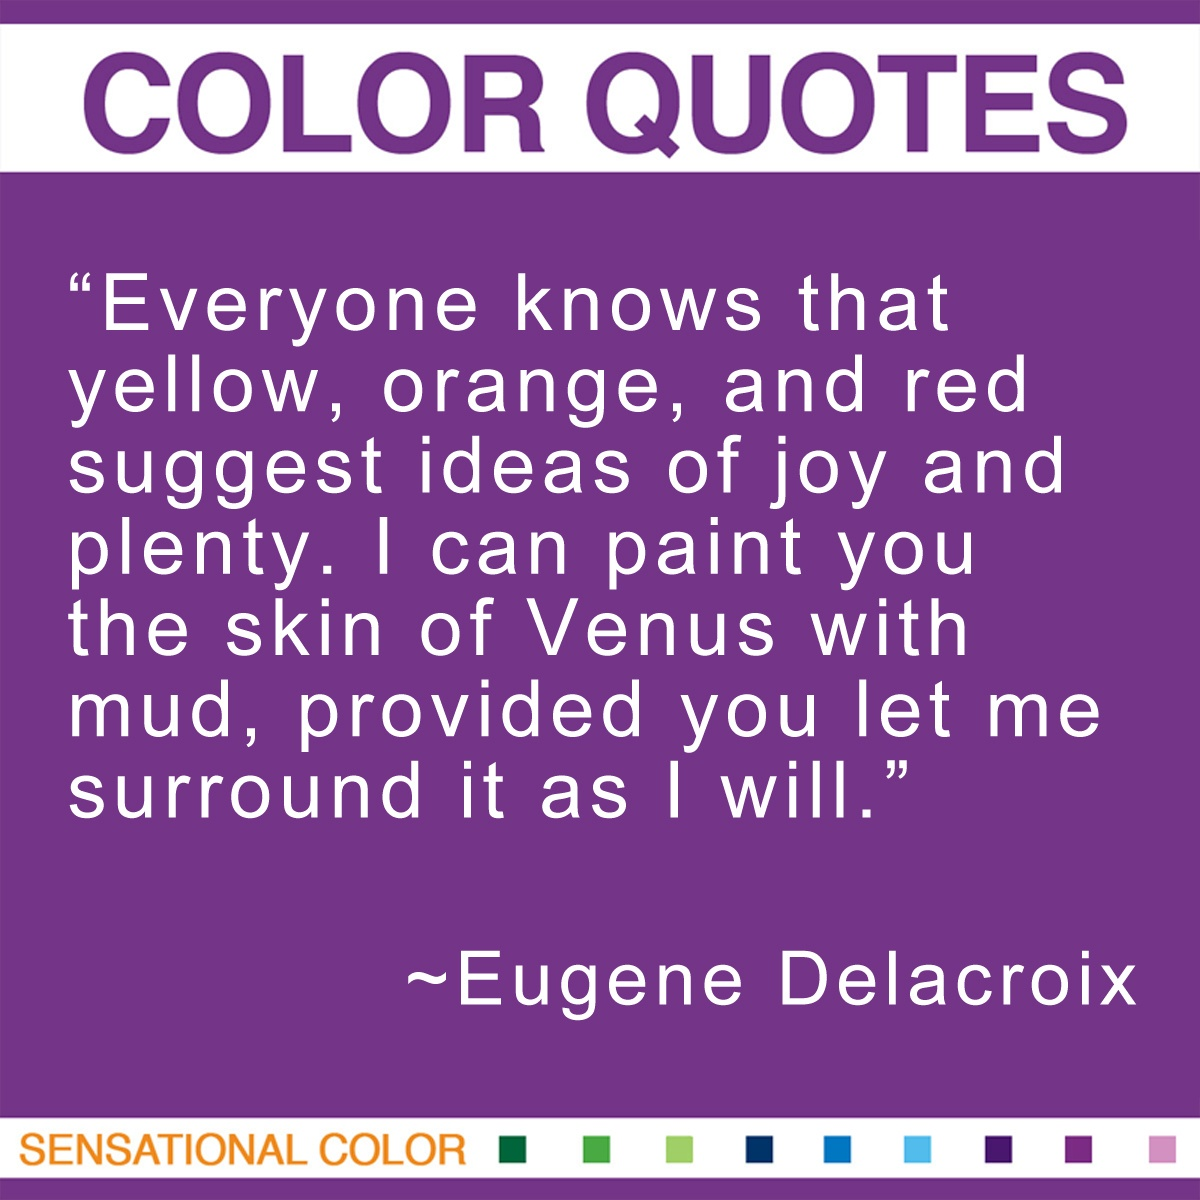 """Everyone knows that yellow, orange, and red suggest ideas of joy and plenty. I can paint you the skin of Venus with mud, provided you let me surround it as I will. "" - Eugene Delacroix"